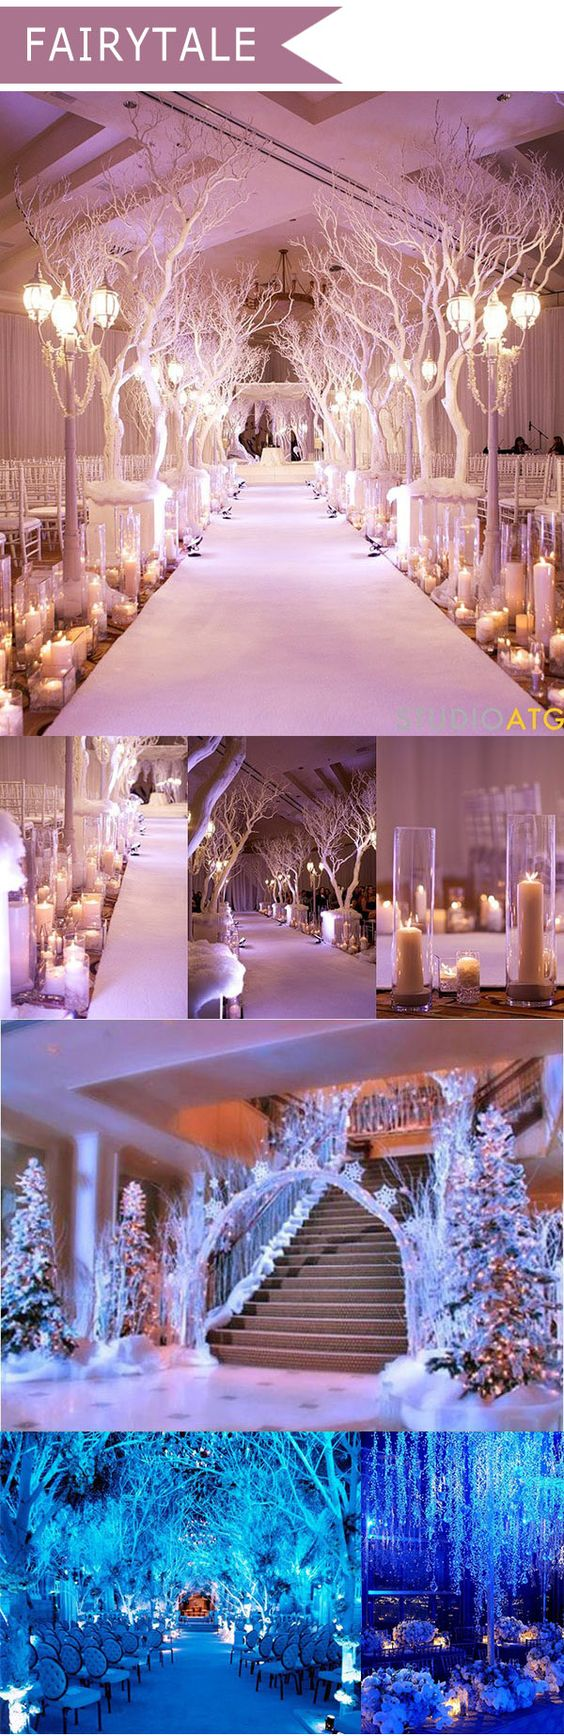 fairytale themed wedding decoration ideas for 2016 trends: